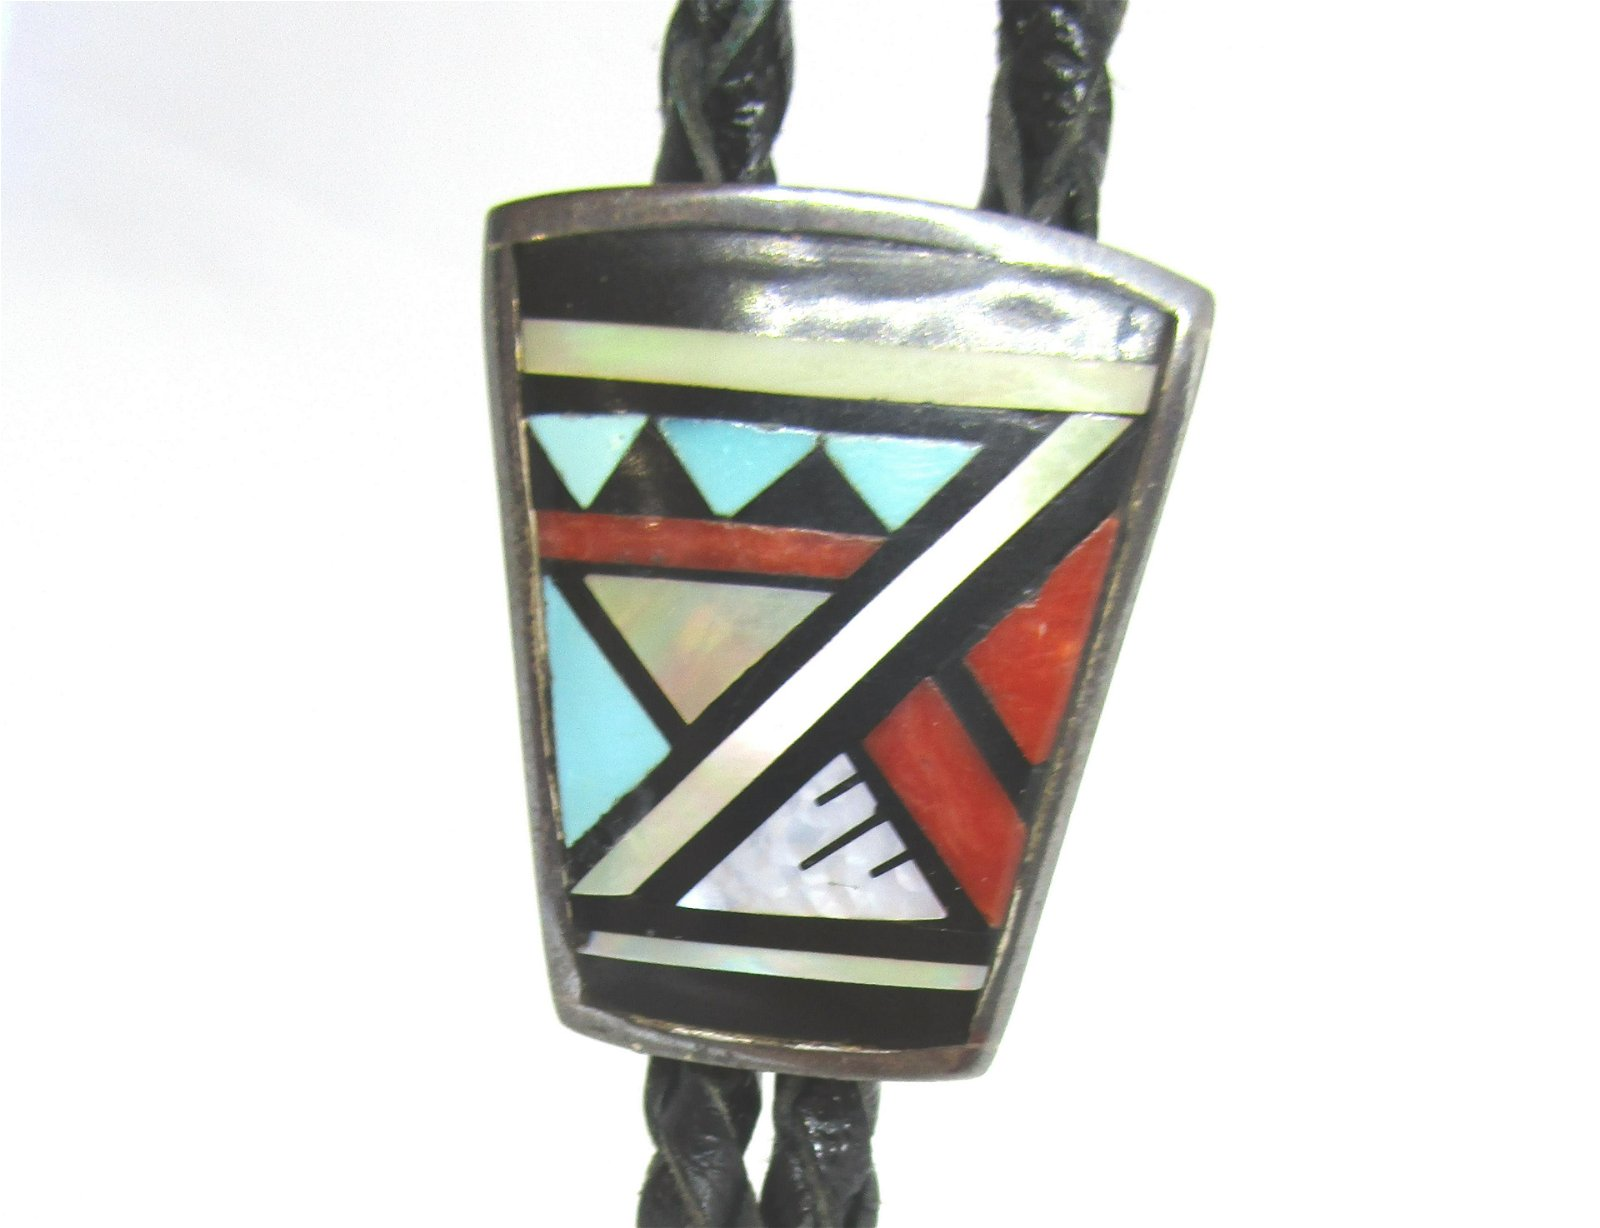 ZUNI SIGNED BOON BOLO TIE NECKLACE STERLING SILVER